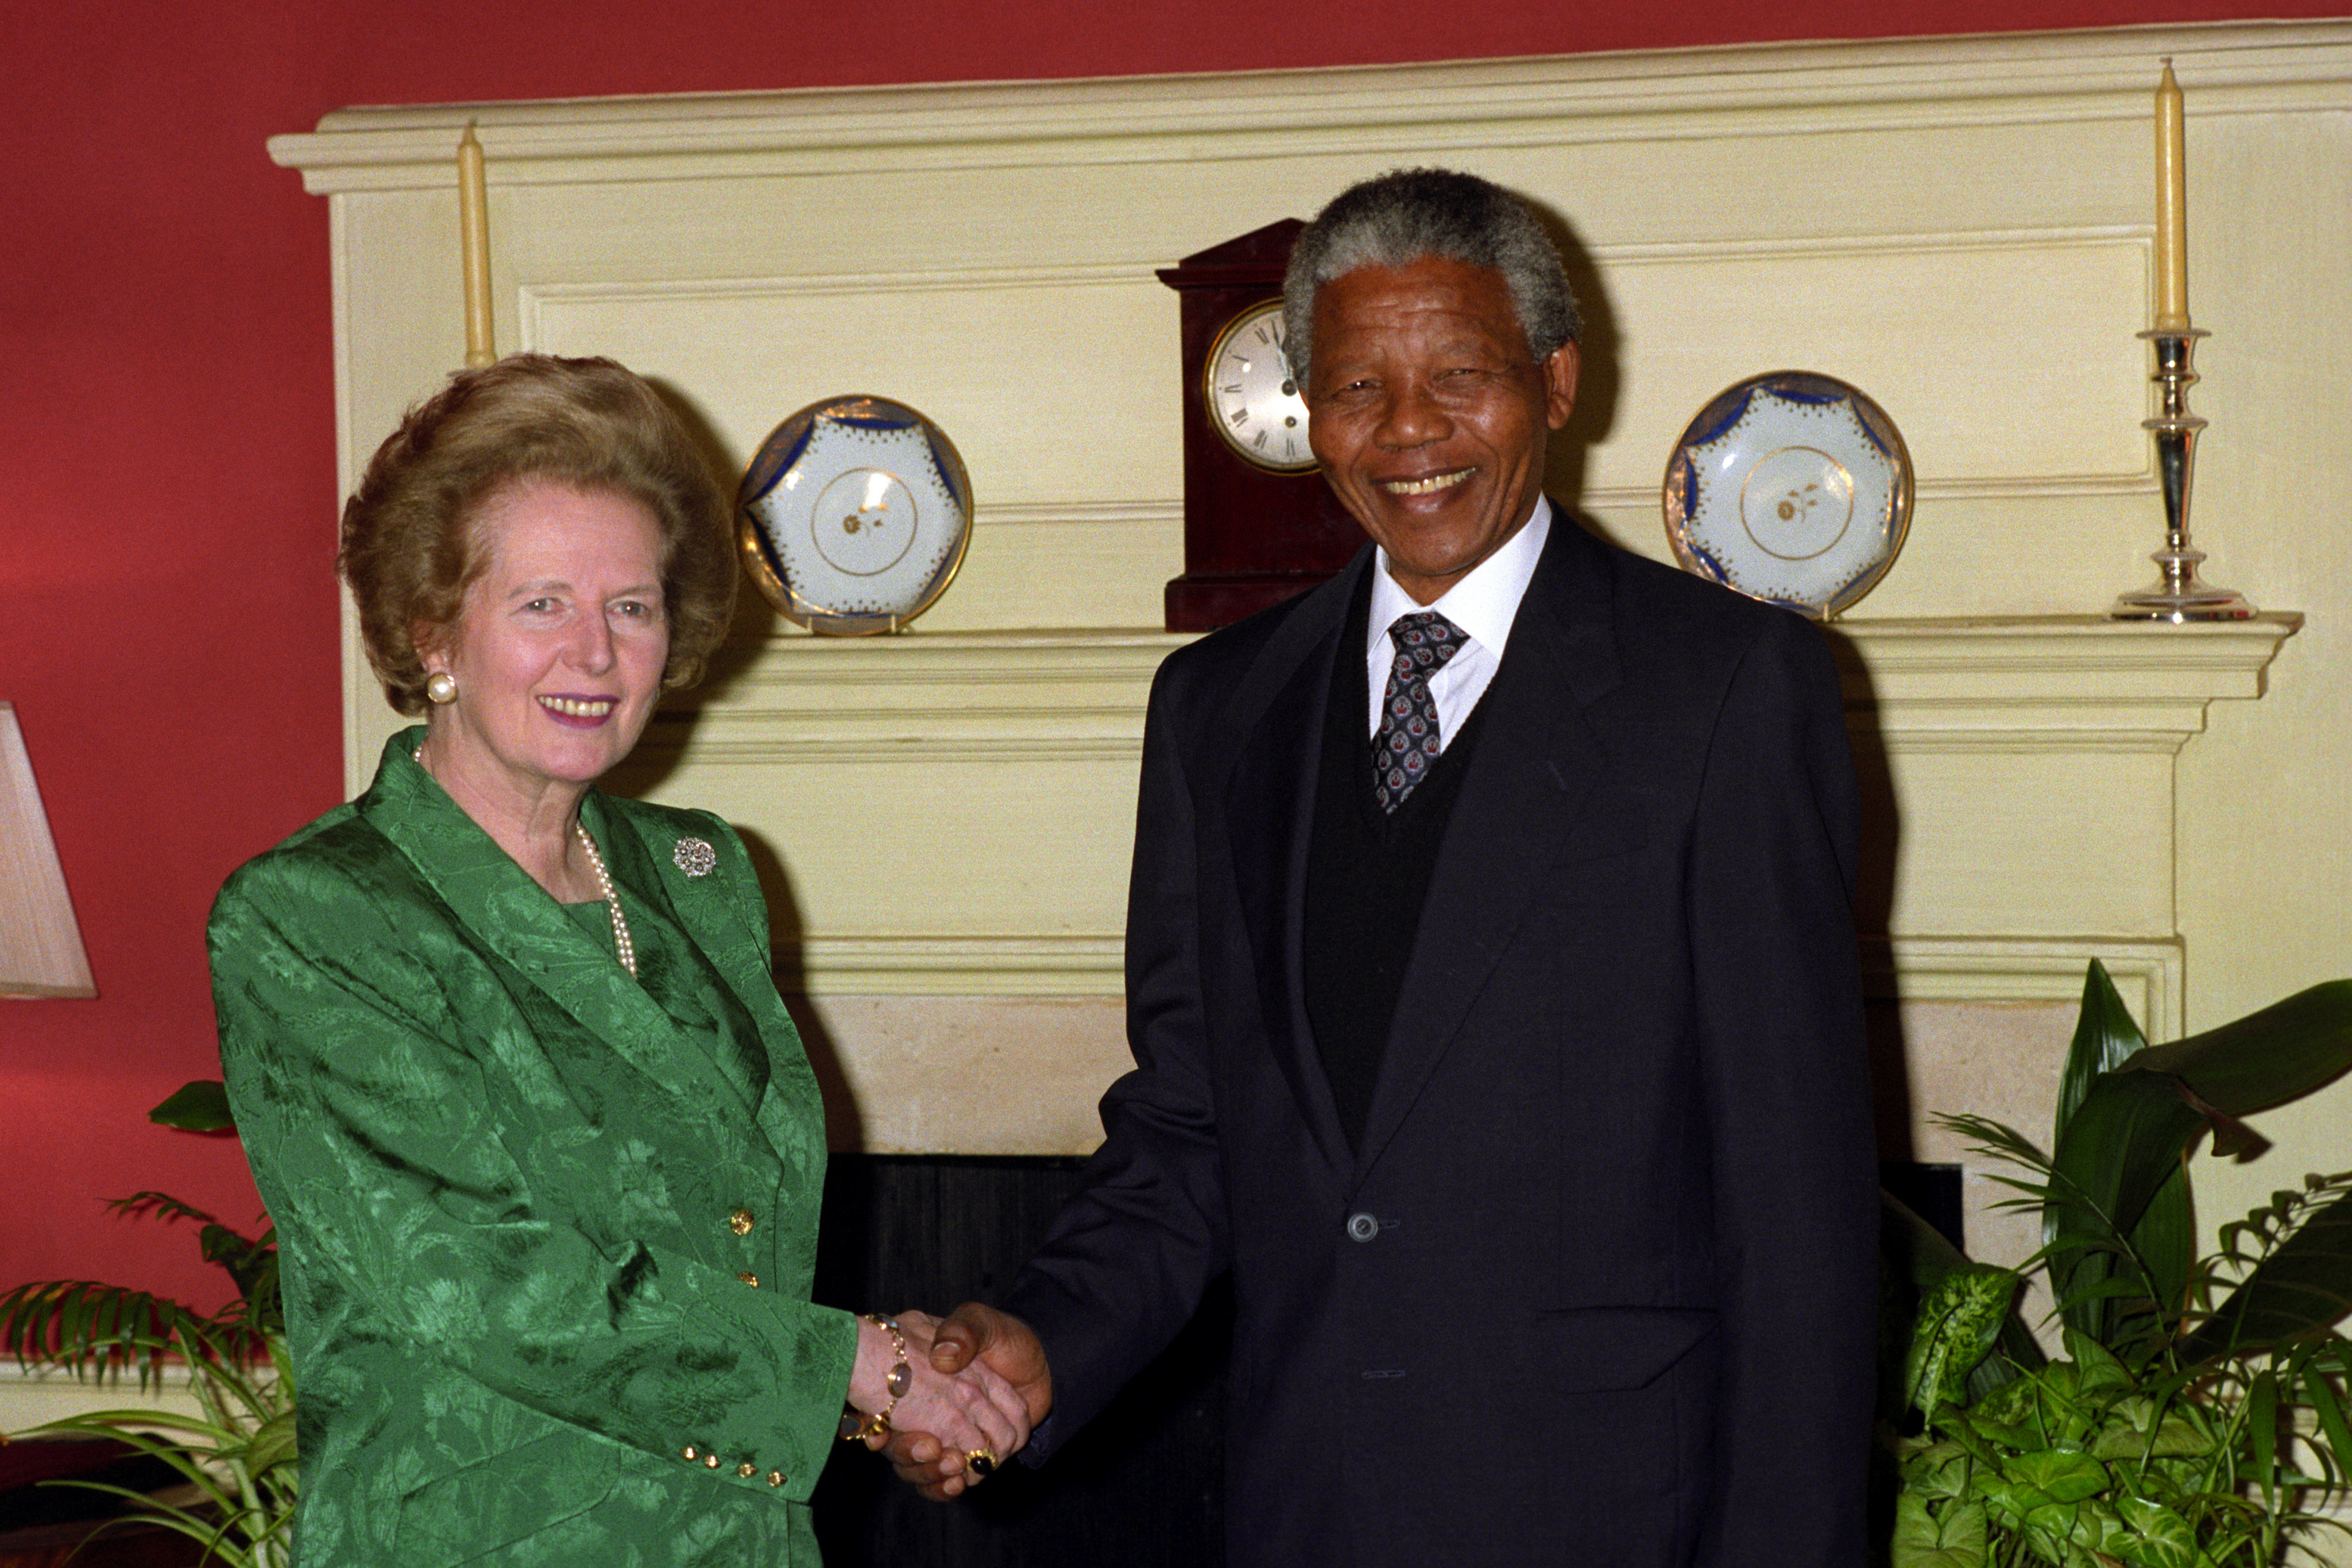 Nelson Mandela meeting Margaret Thatcher in 1990